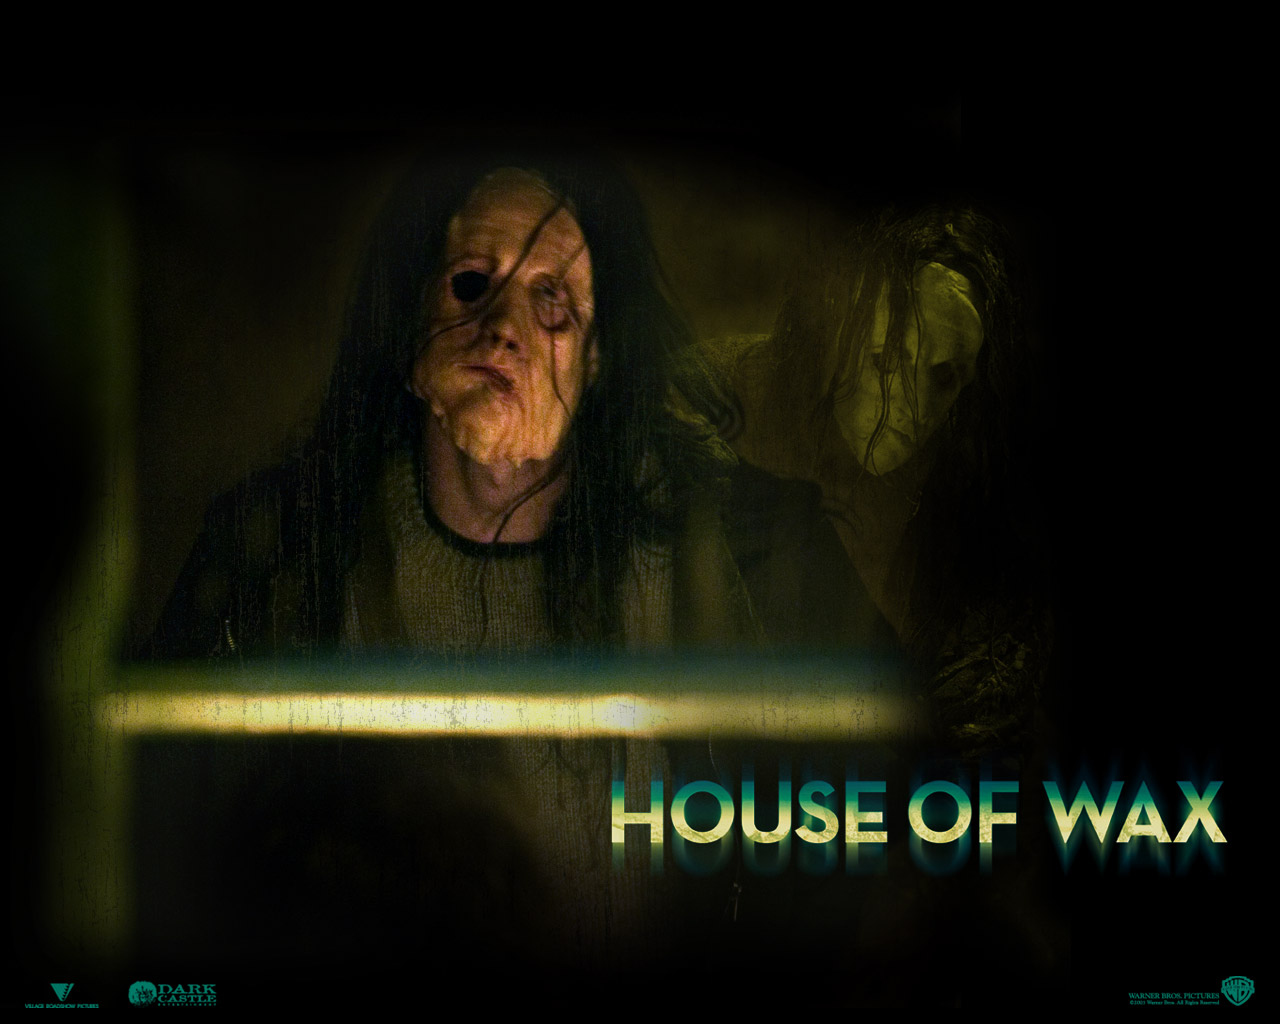 House of wax 5